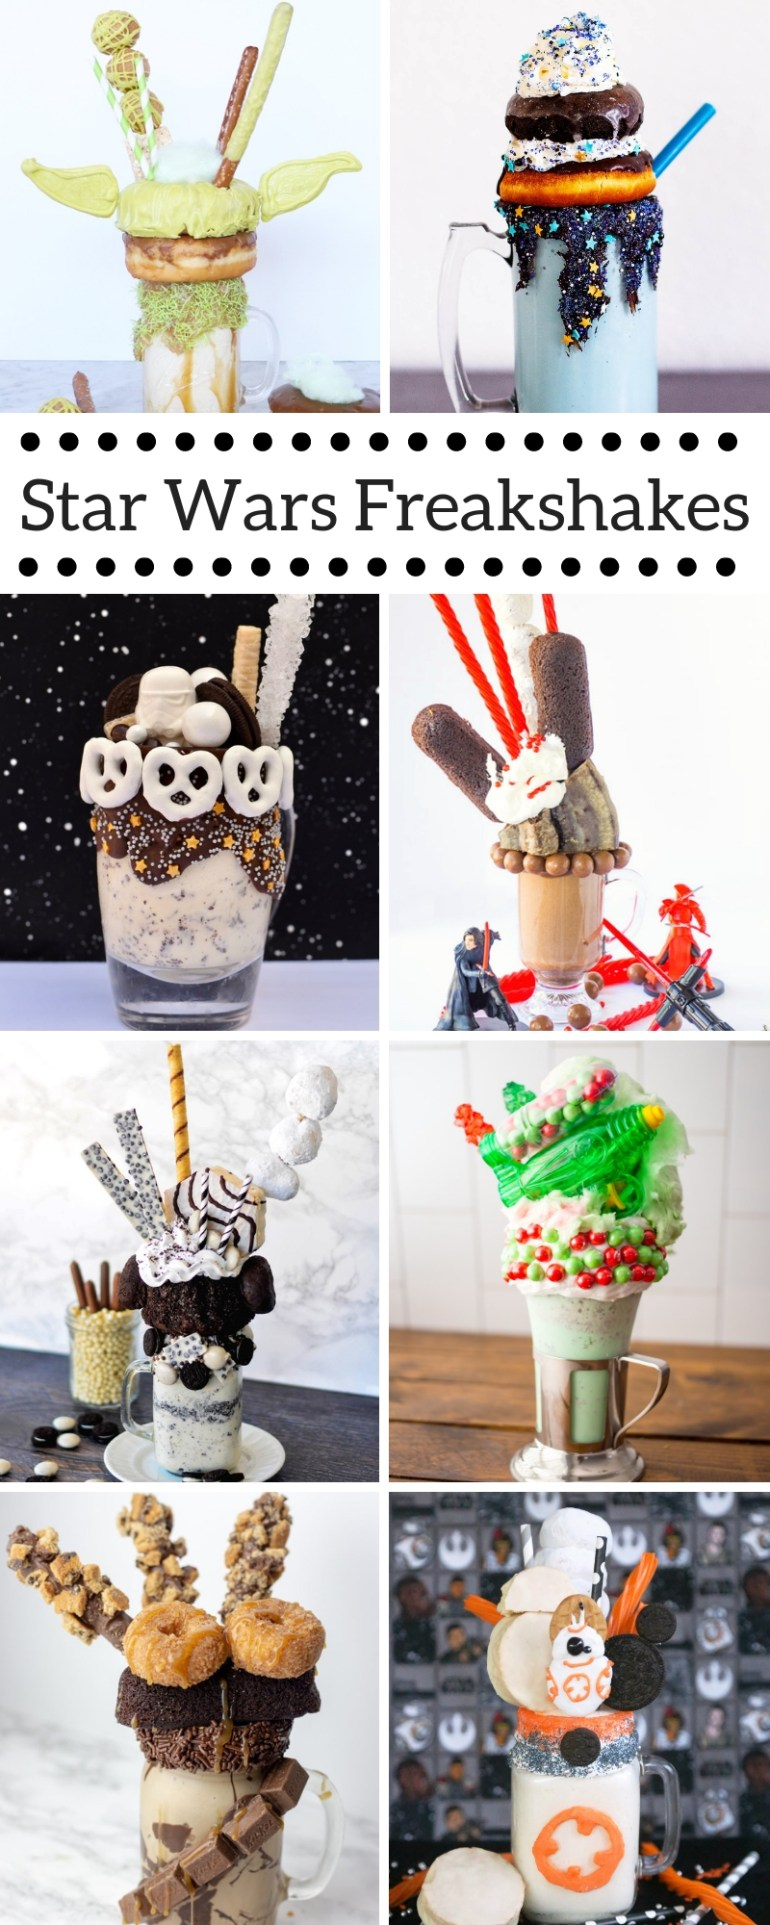 Star Wars themed Freakshakes